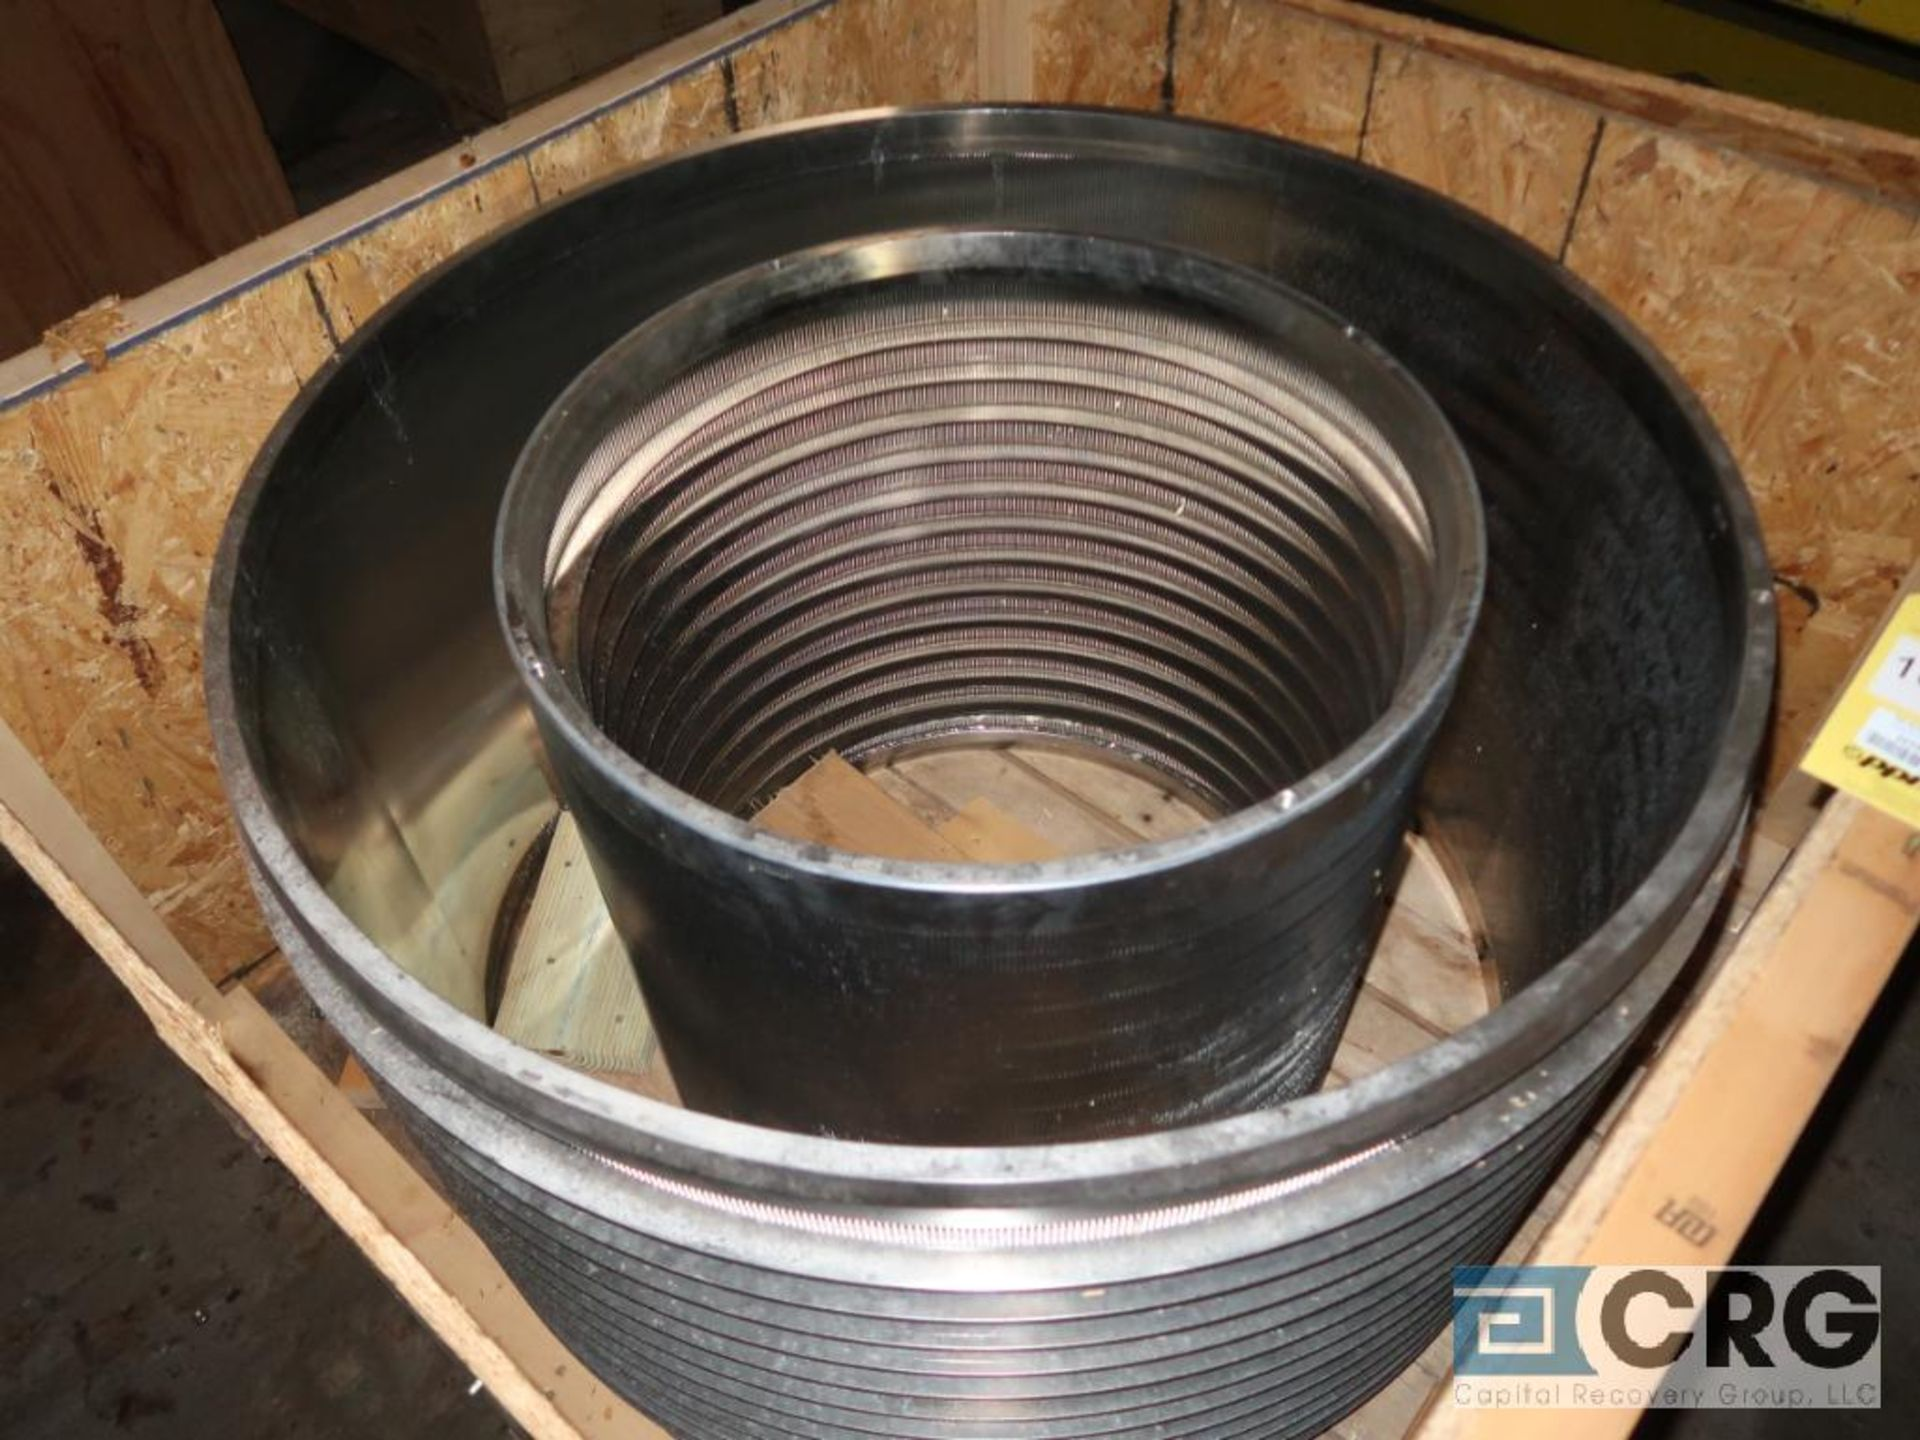 Lot of (2) Voith stainless basket screens, (1) 3/8 in., 16UNC2, C bar C SH 0.40, (1) 3/8 in. UNC 2B,